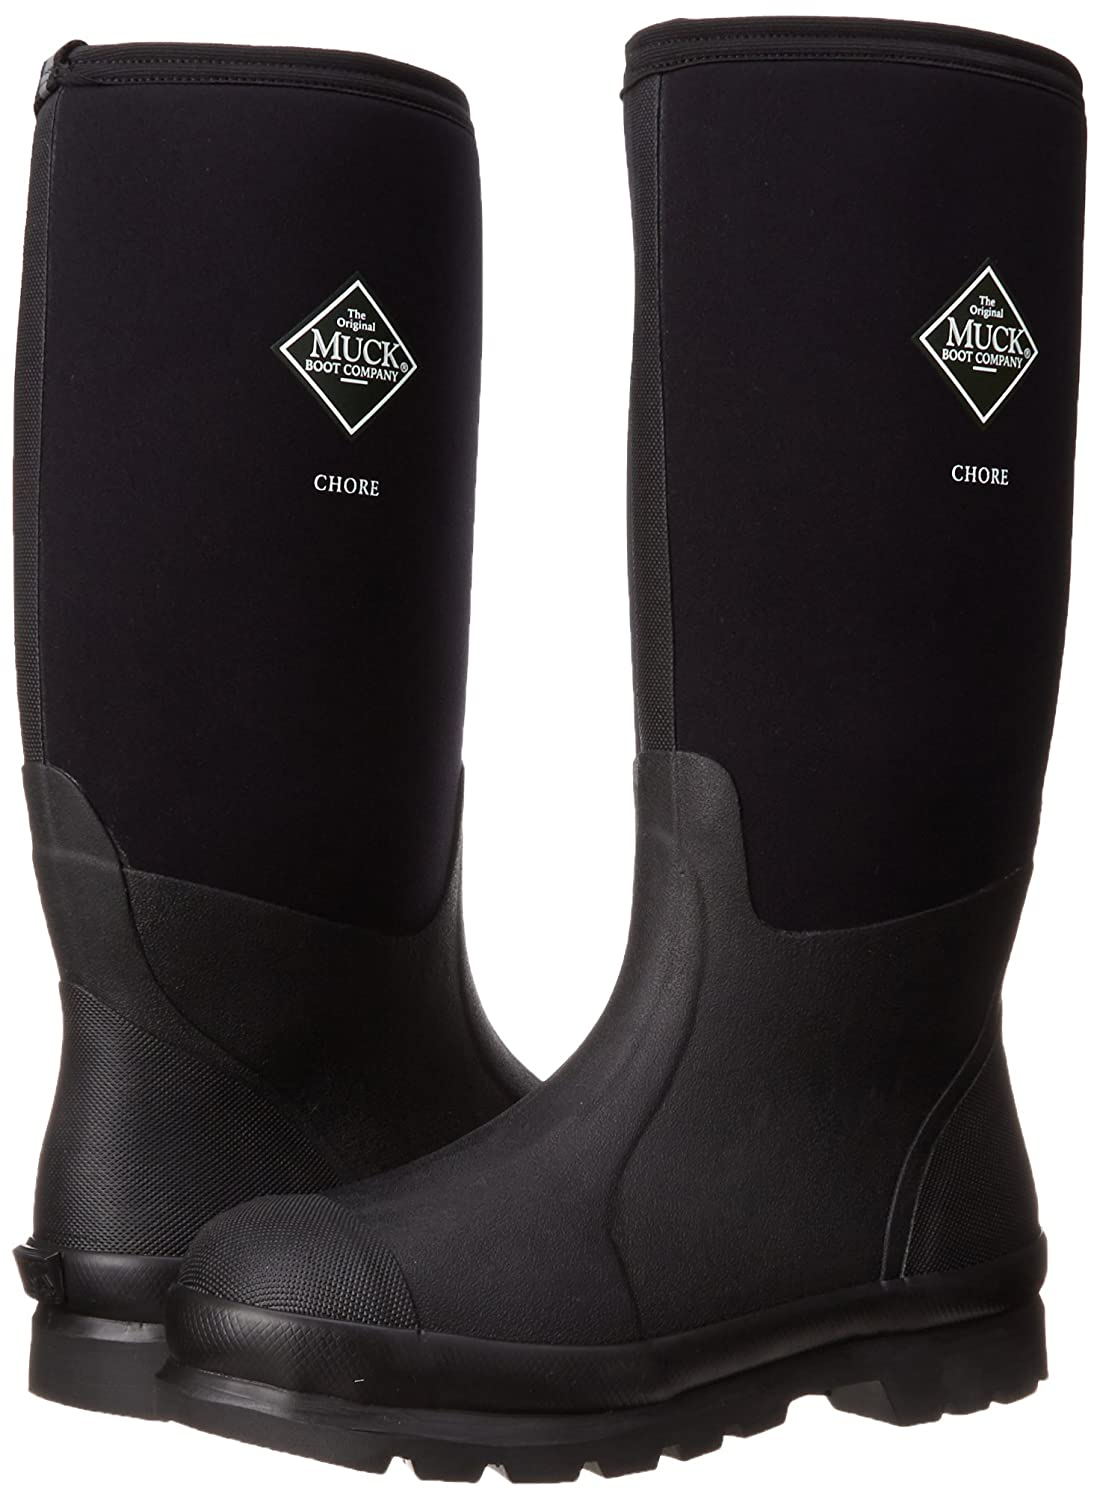 Muck Boots Chore High, Unisex Adults' Work Wellingtons: Amazon.co ...